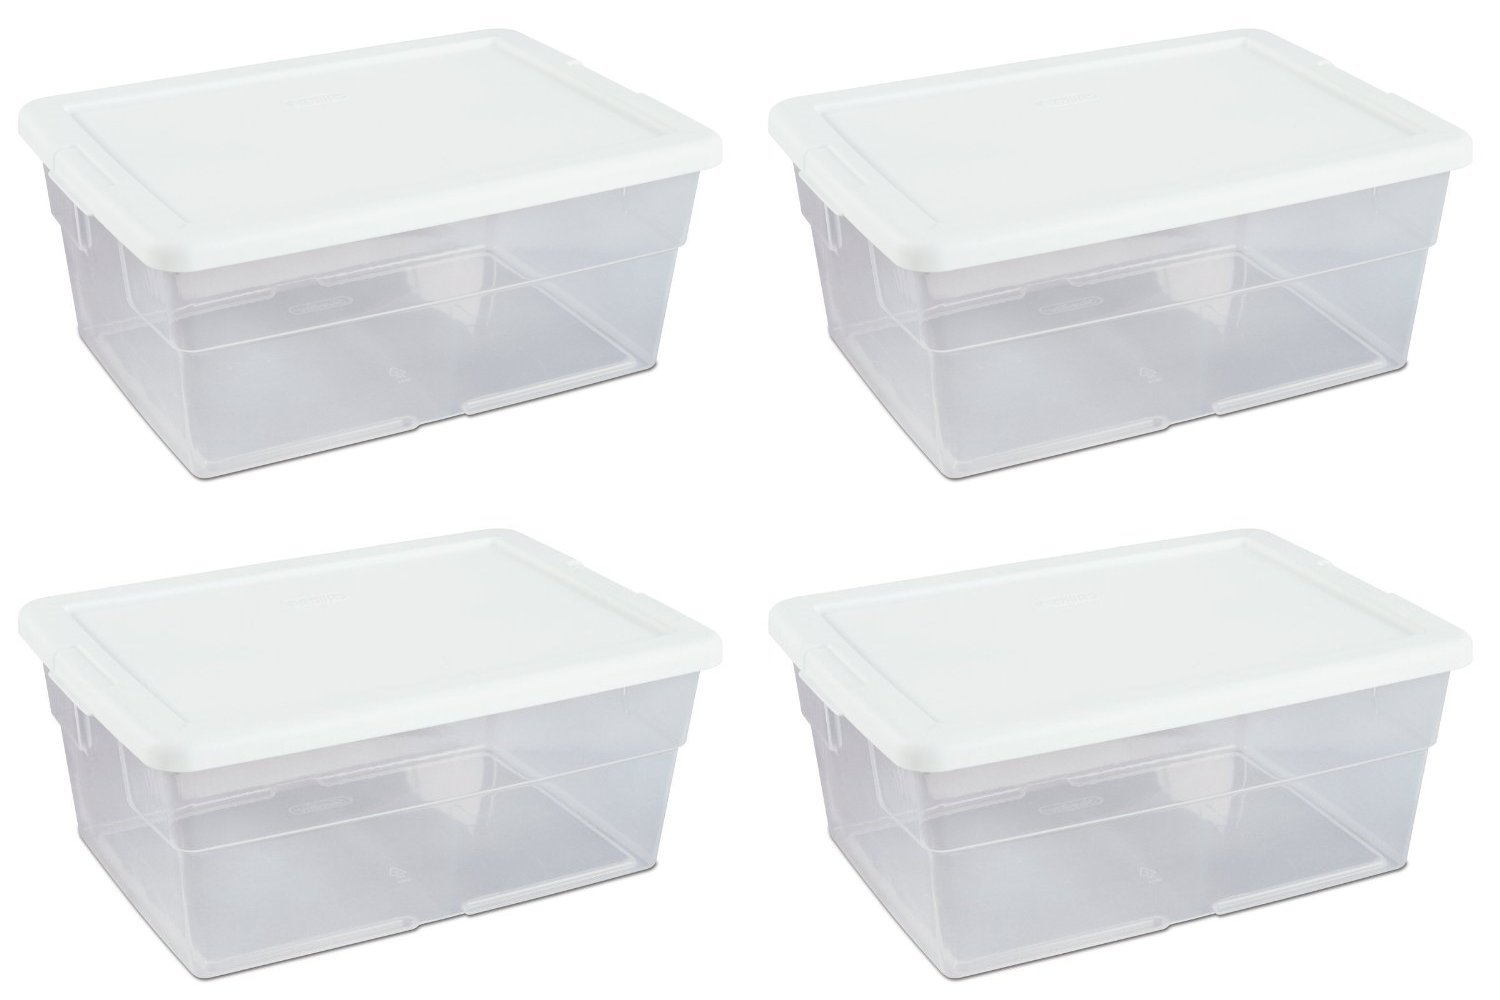 Sterilite 16448012 16-Quart Storage Box, White Lid with See-Through Base (Pack of 4) by STERILITE 1644PK4